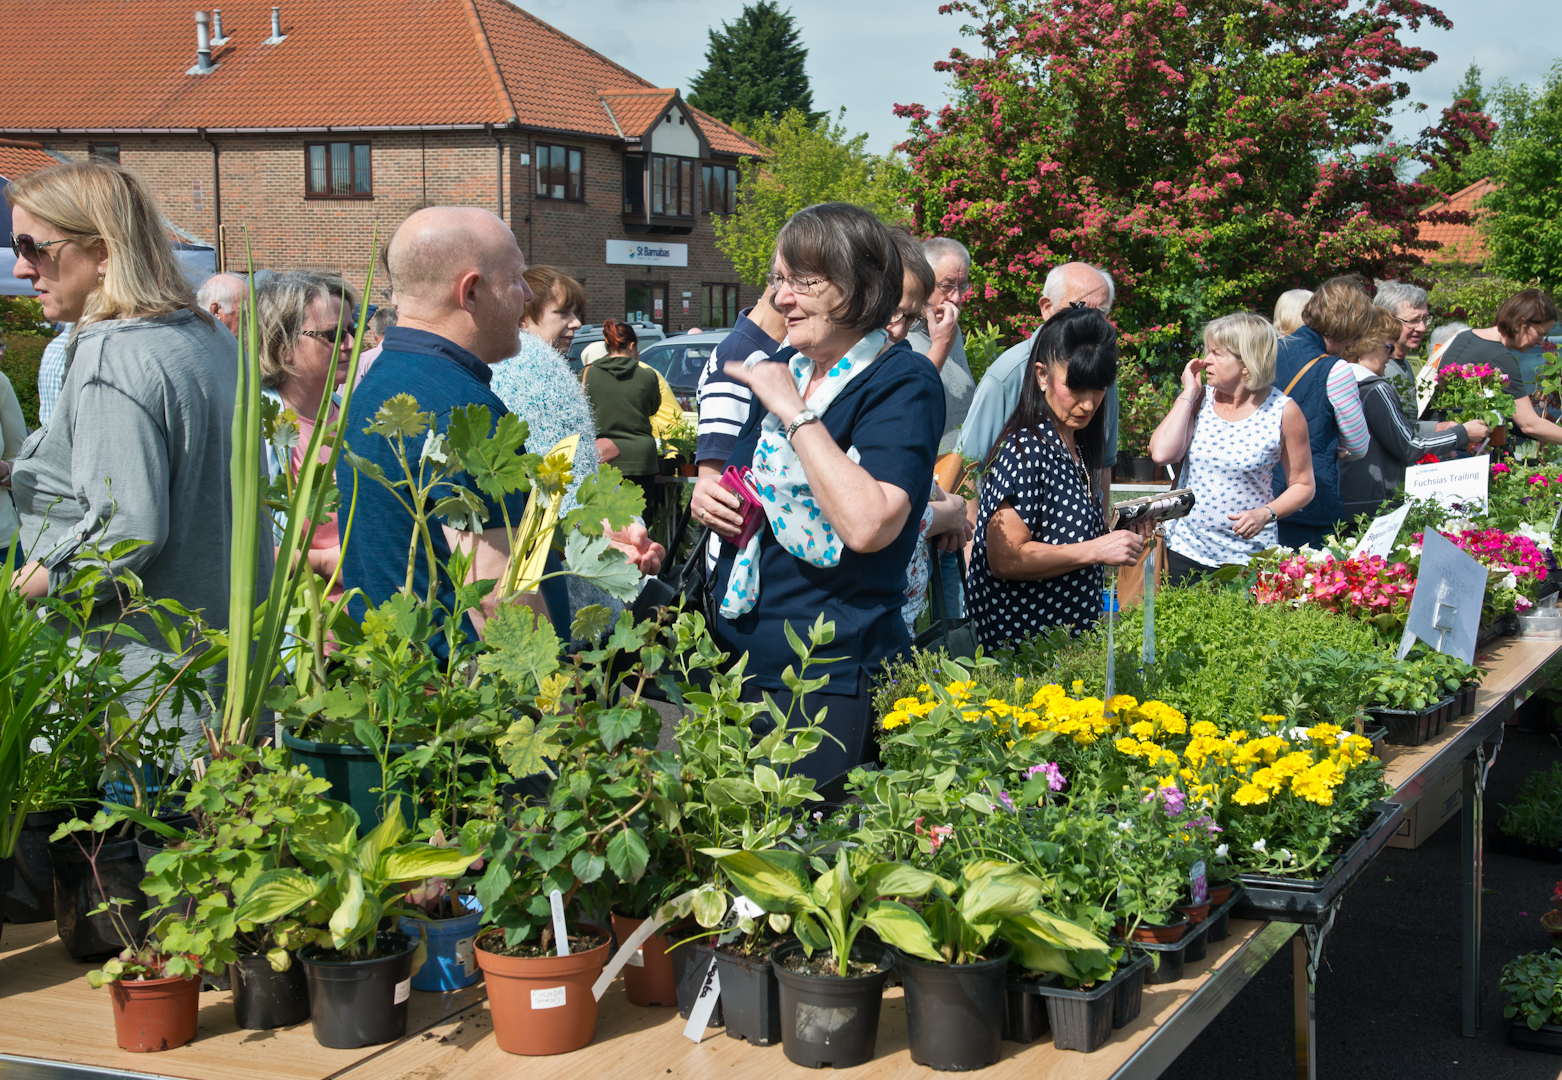 St Barnabas Hospice will be hosting their annual Cream Tea & Plant Sale